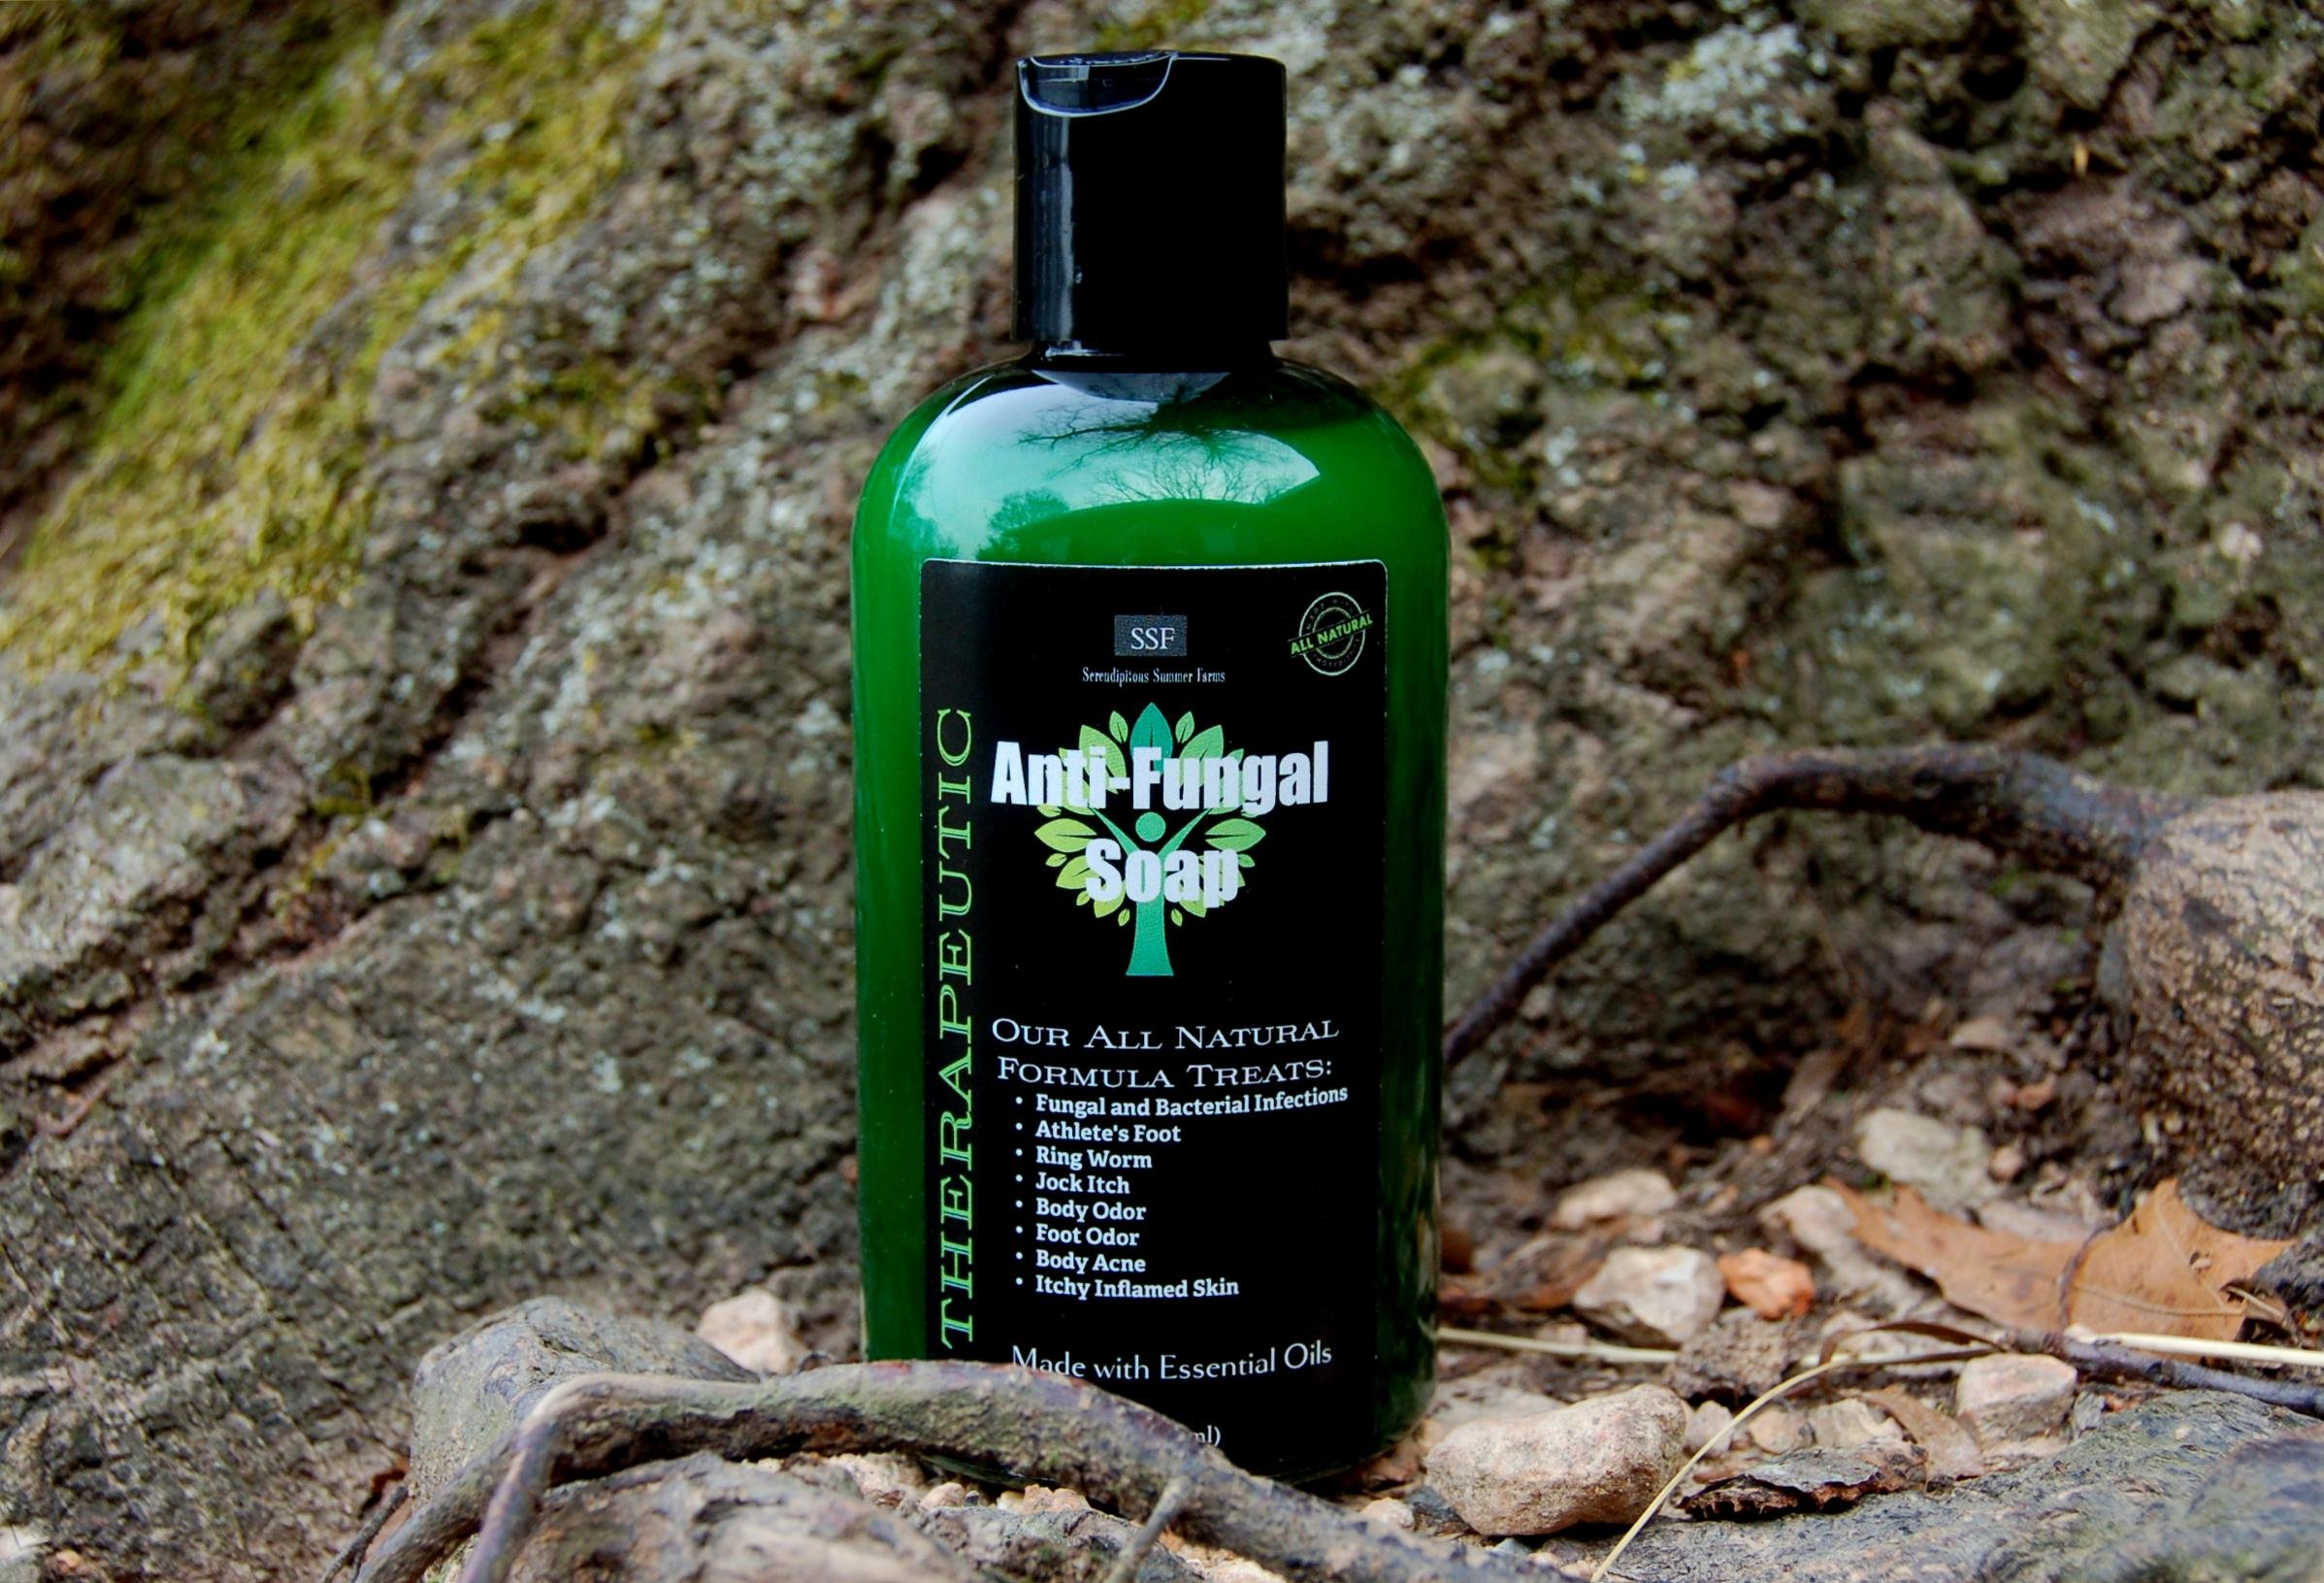 (2pk.) Antifungal Soap with Tea Tree, Mint, and Clove. All Natural Formula -Eliminate Athletes Foot, Body Odor, Acne. Naturally Antibacterial! Hand Sanitizing Soap!